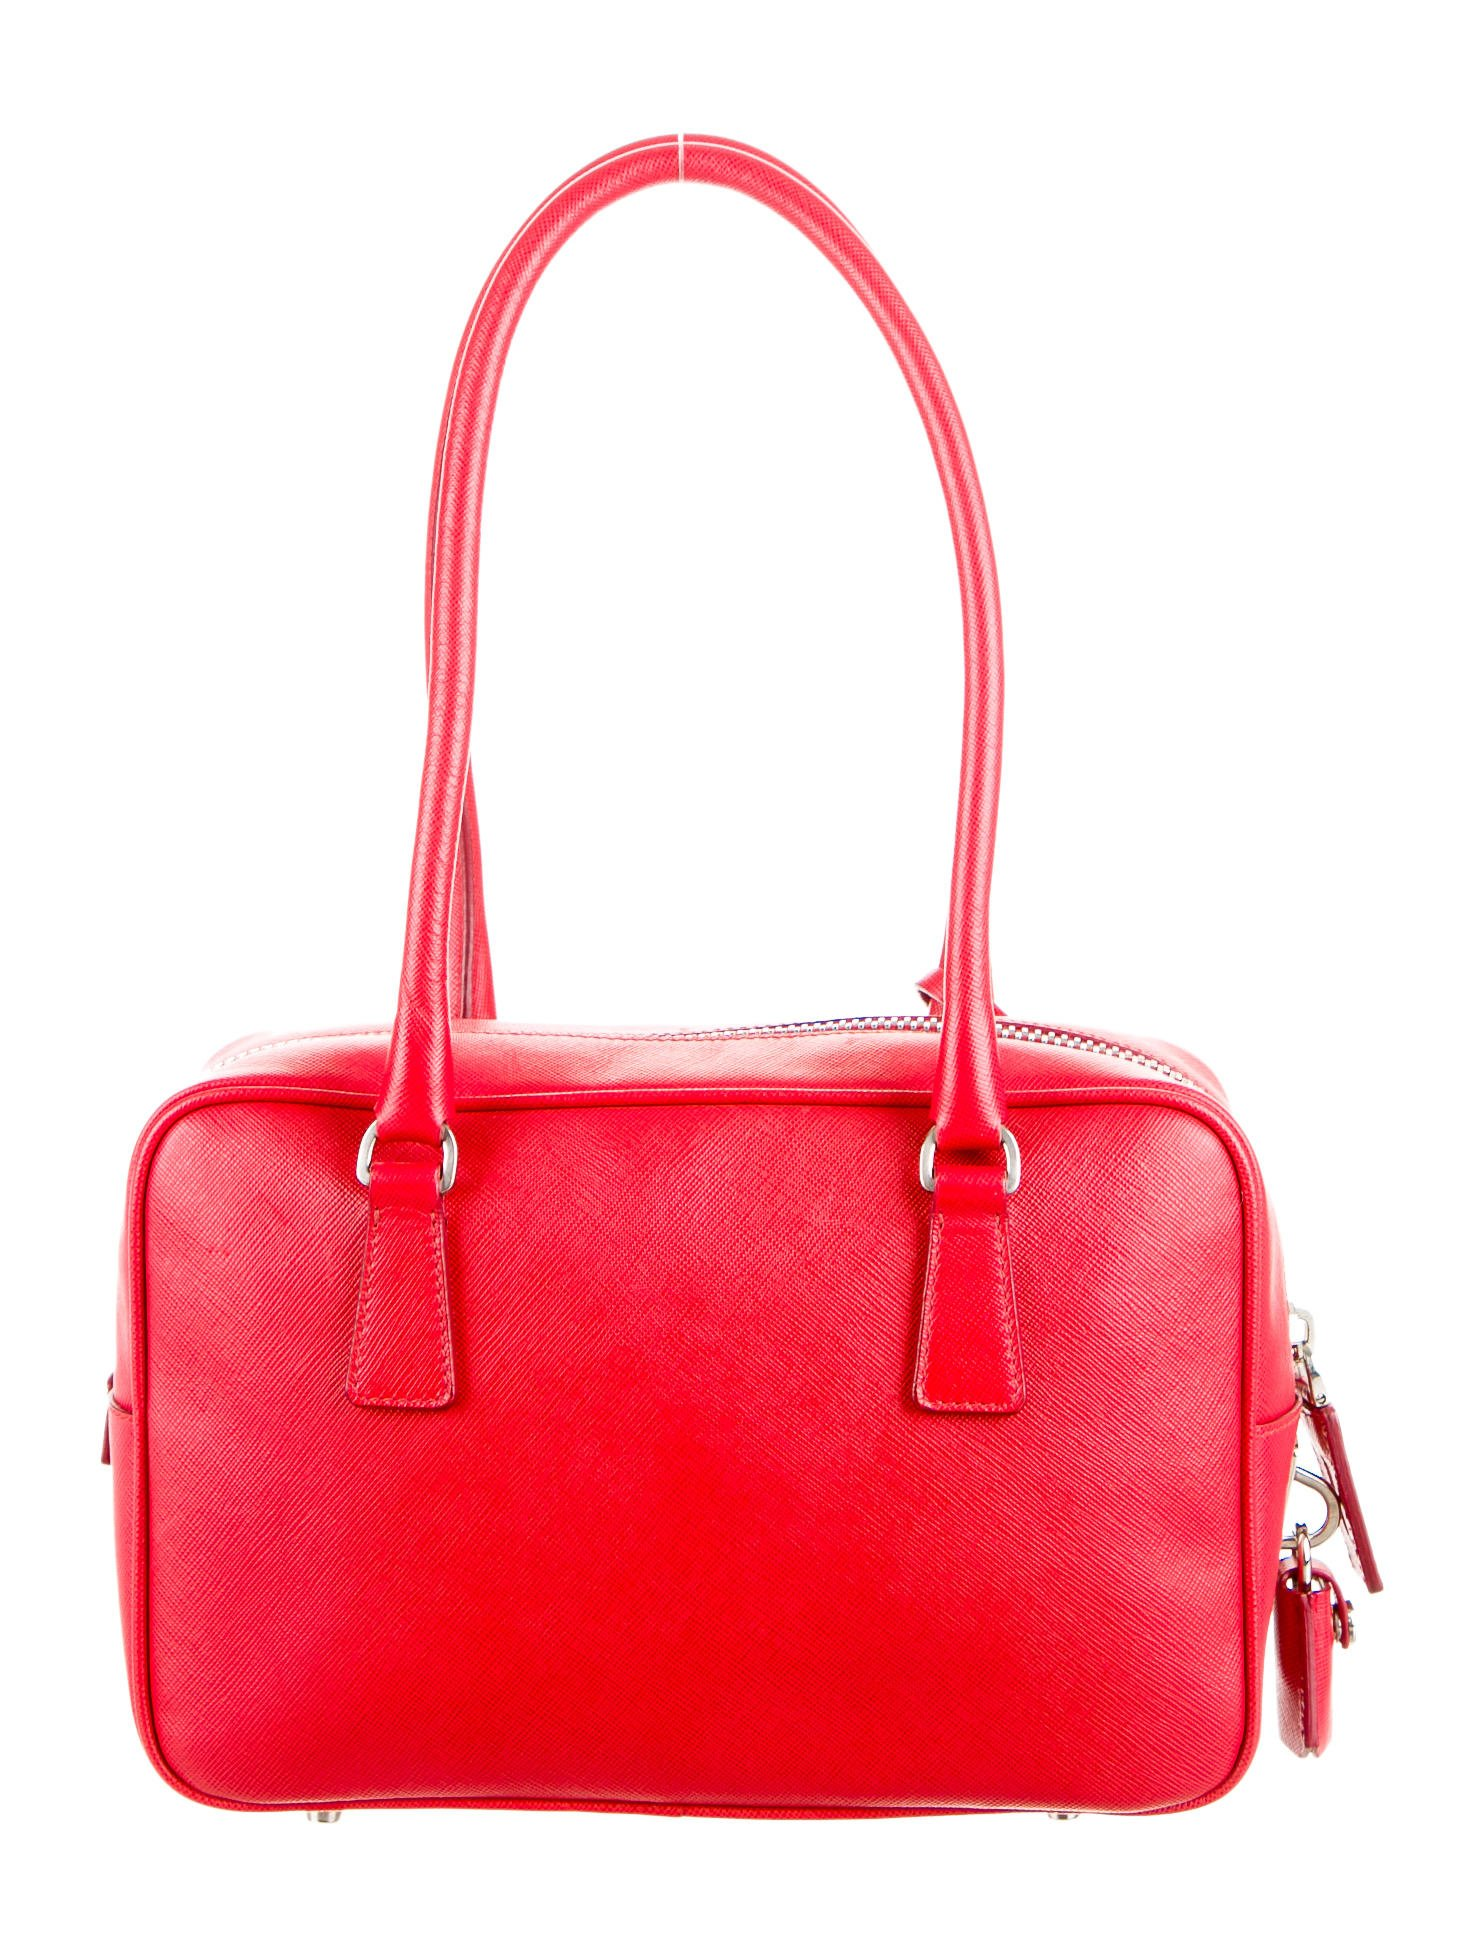 Red Prada Bauletto Shoulder Bag BL0637